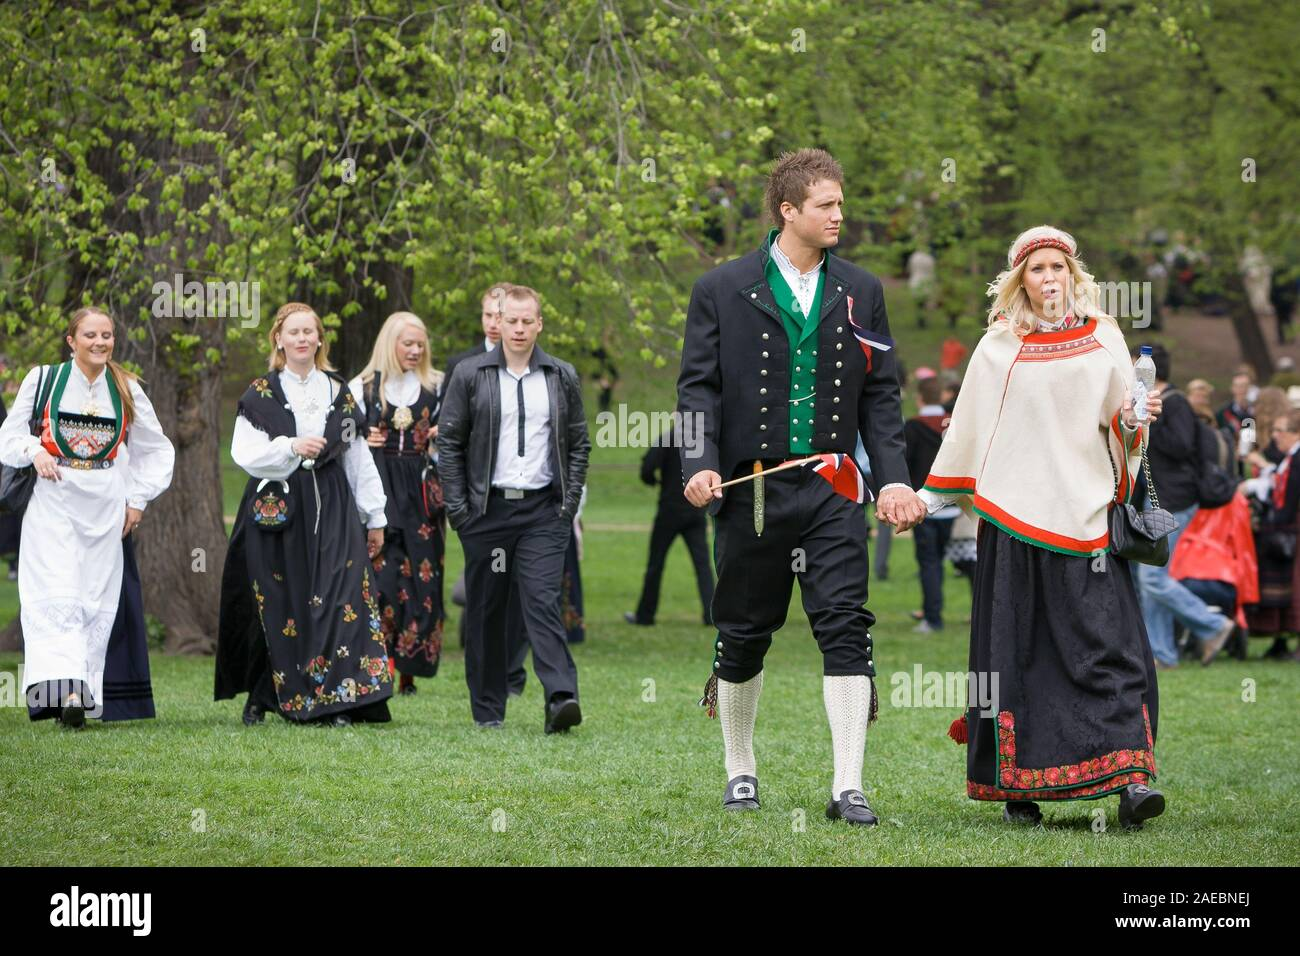 Oslo, Norway - May 17, 2010: National day in Norway. Norwegians after traditional celebration and parade on Karl Johans Gate street. Stock Photo